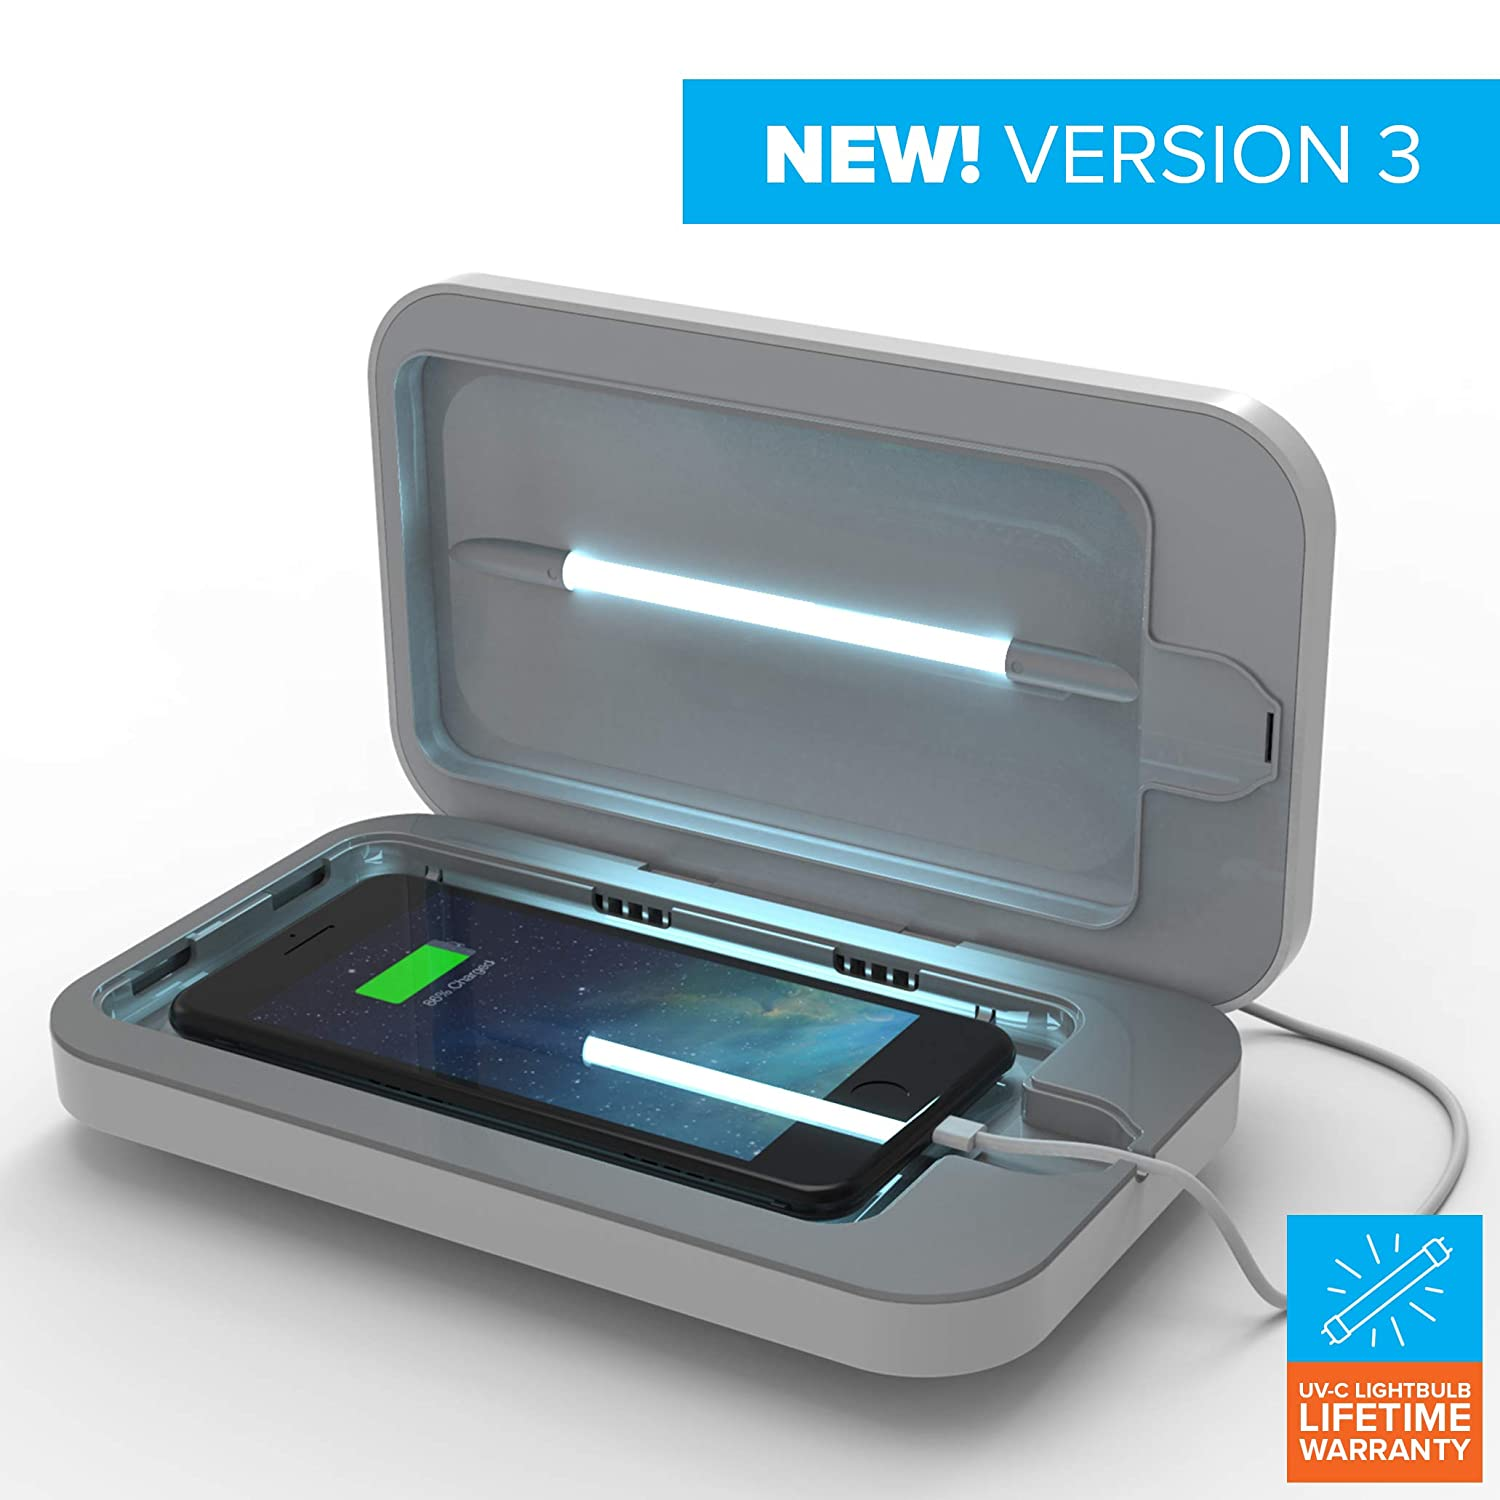 PhoneSoap 3.0 UV Sanitizer and Universal Phone Charger (White 3.0, Single)